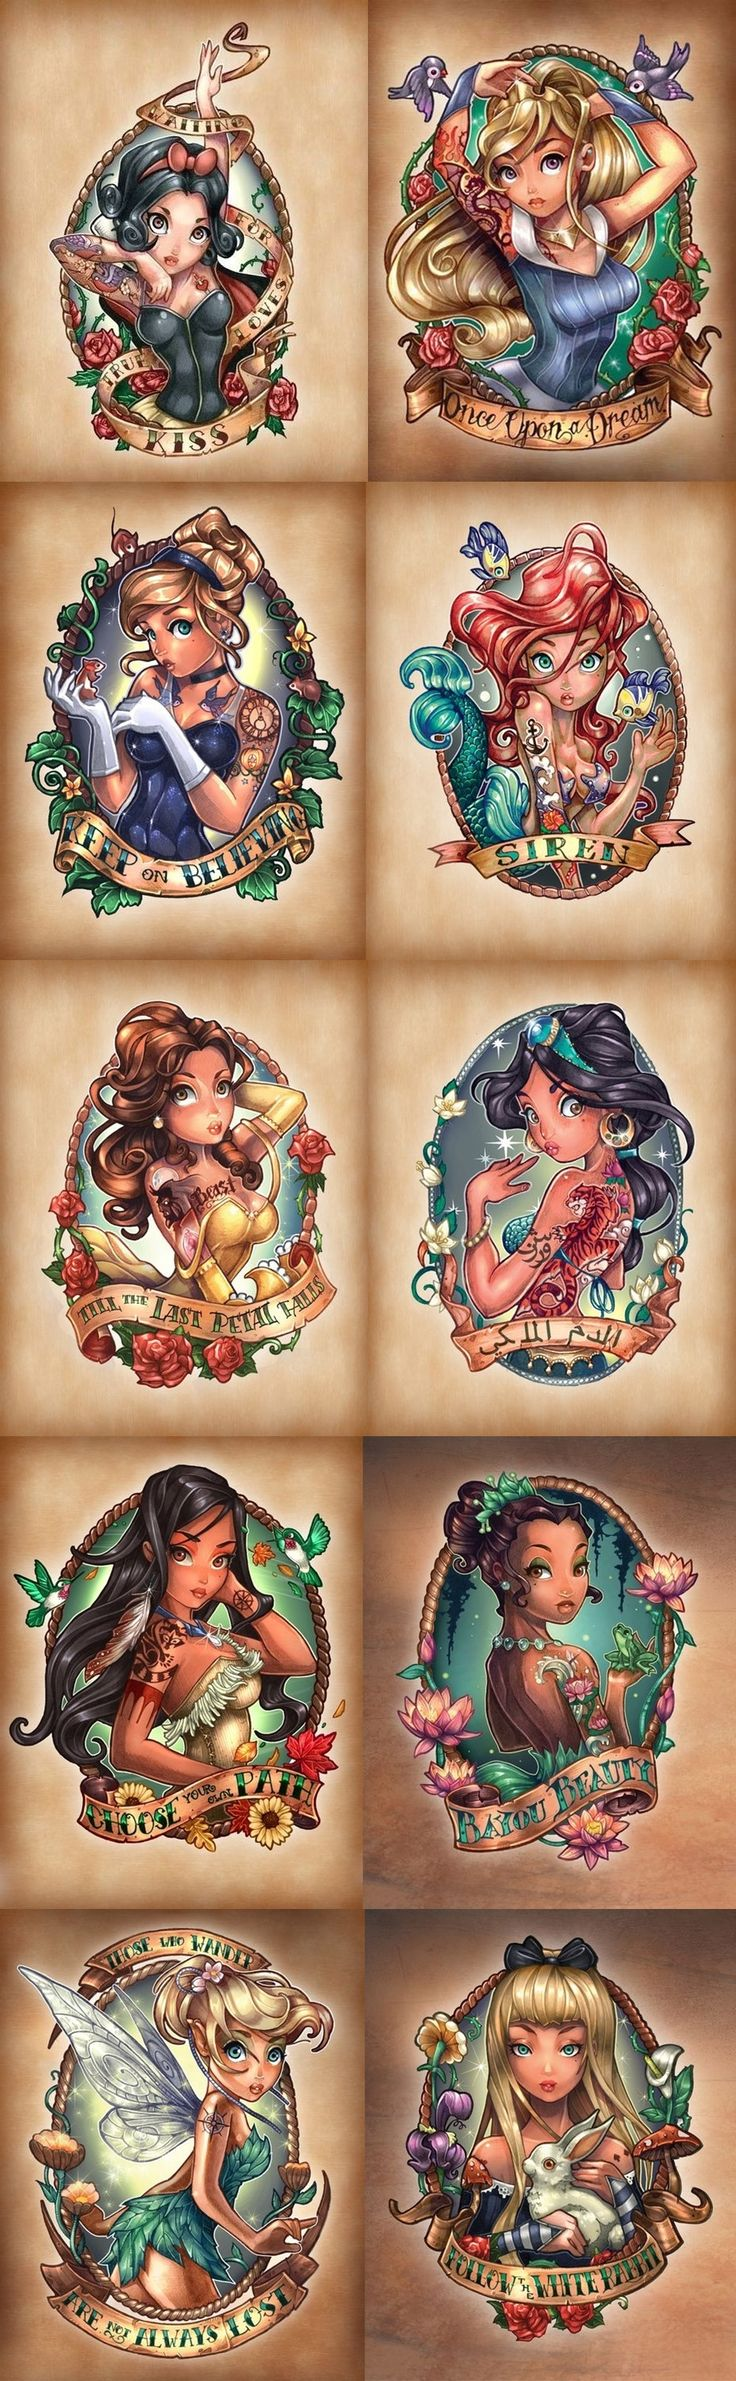 Disney Princesses as fierce vintage tattooed Pin-Ups diffidently want one of these!